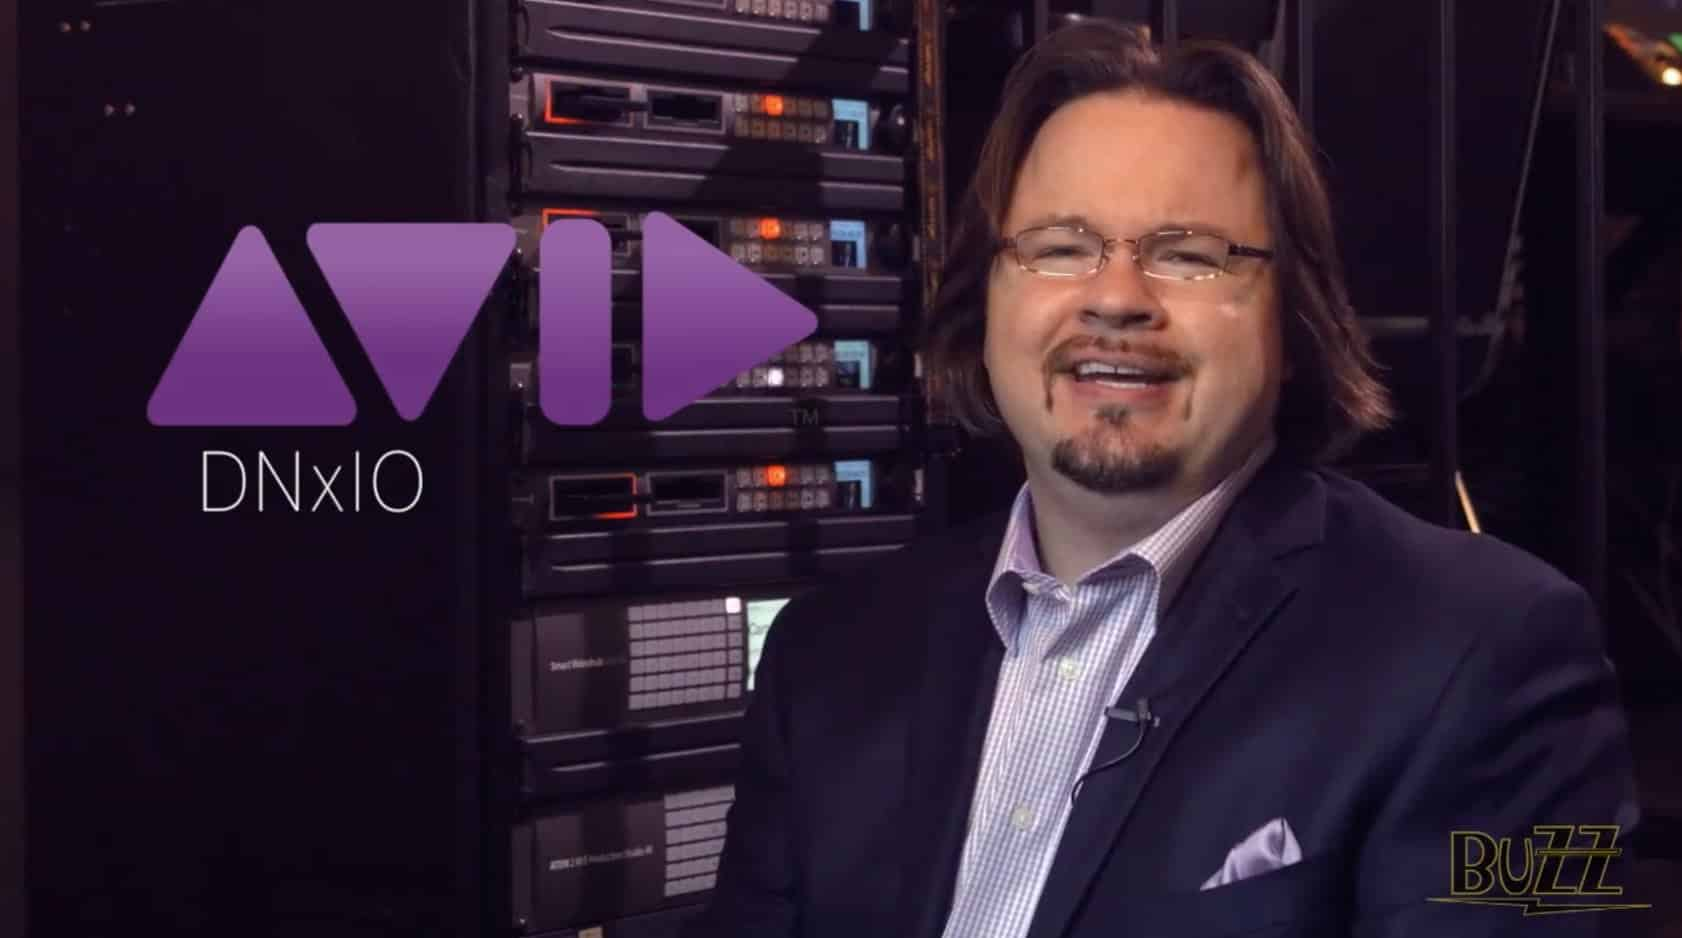 Tech Talk - Getting A Glimpse of The New Avid DNxIO Box